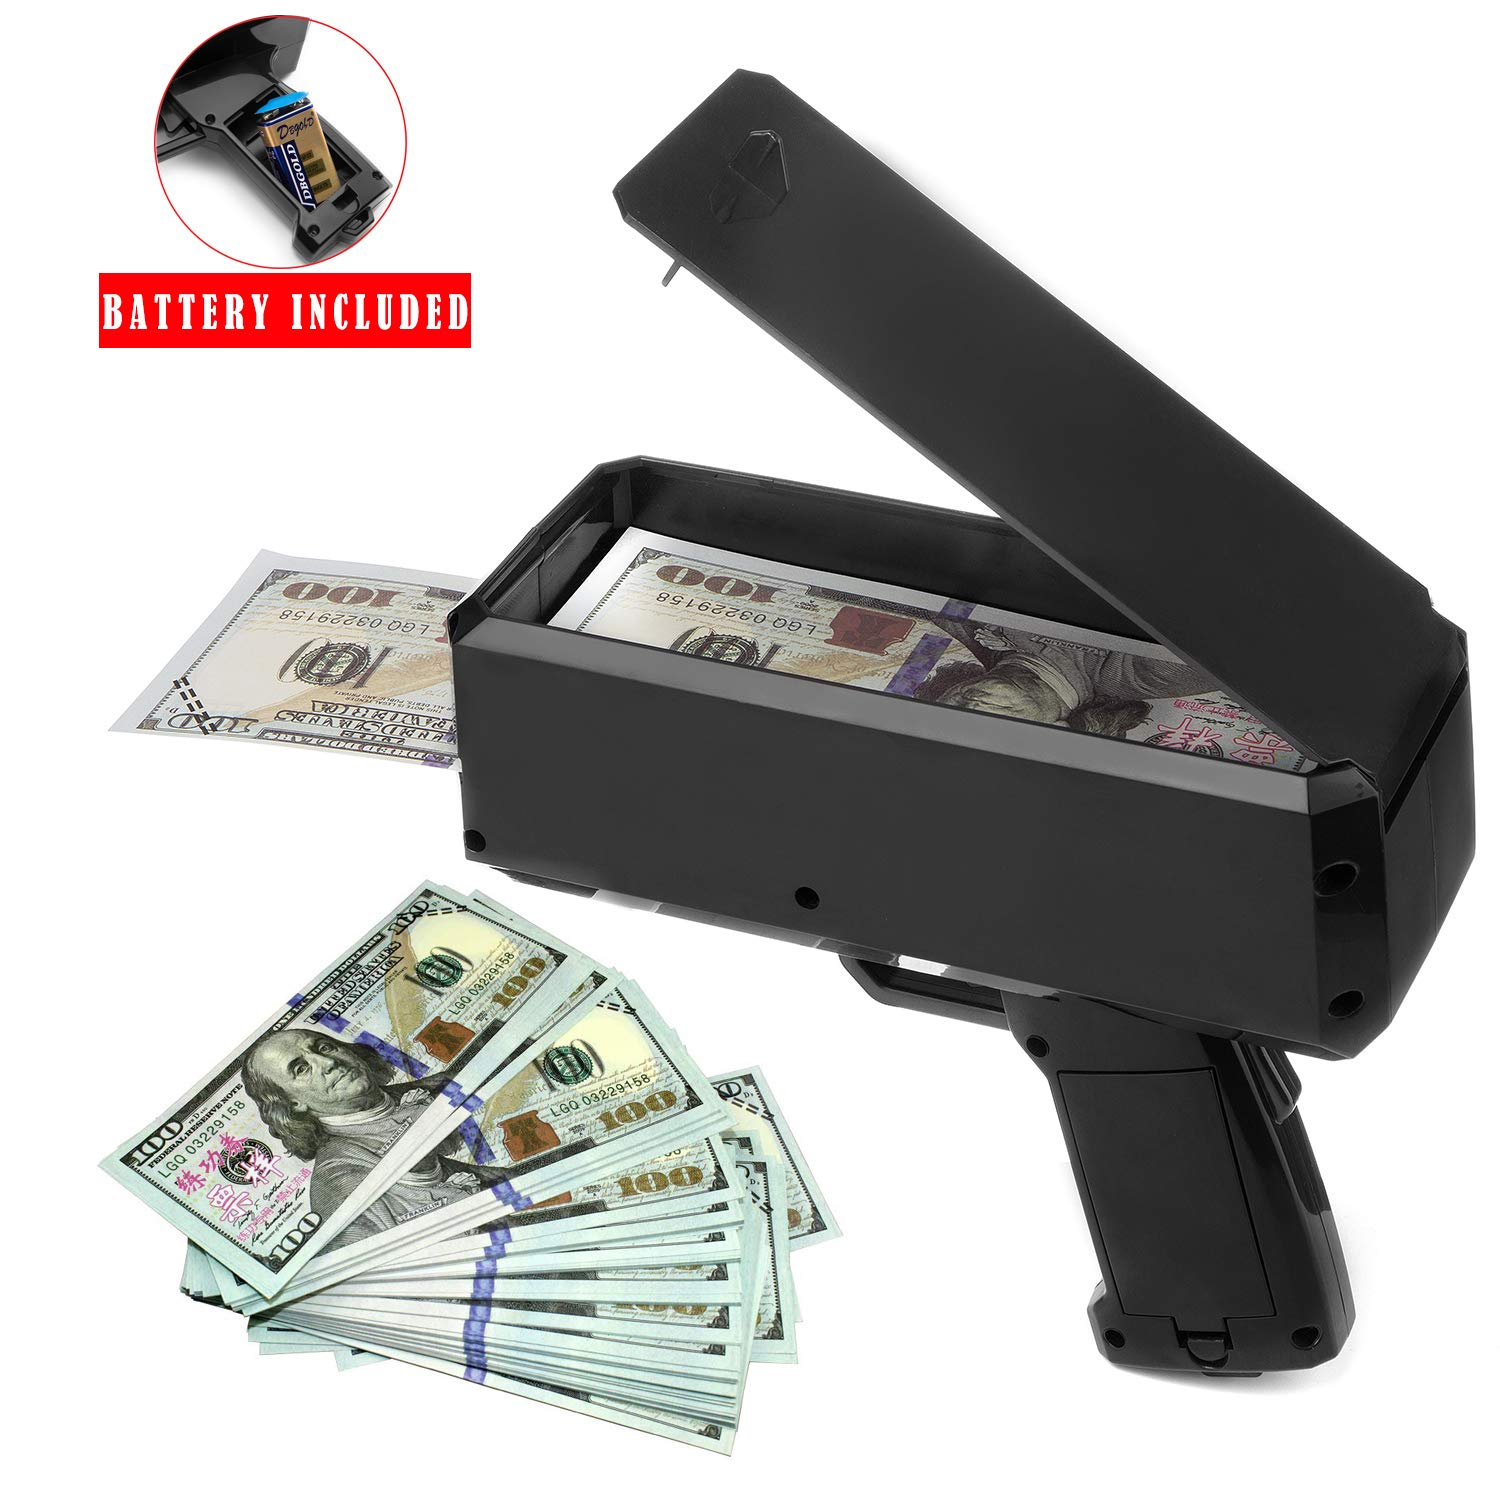 Wowok Black Money Gun with 10,000$ Fake Money, Super Money Guns Paper Playing Spary Money Gun Make it Rain Toy Gun Cash Gun for Game Party Supplies(Battery Included)